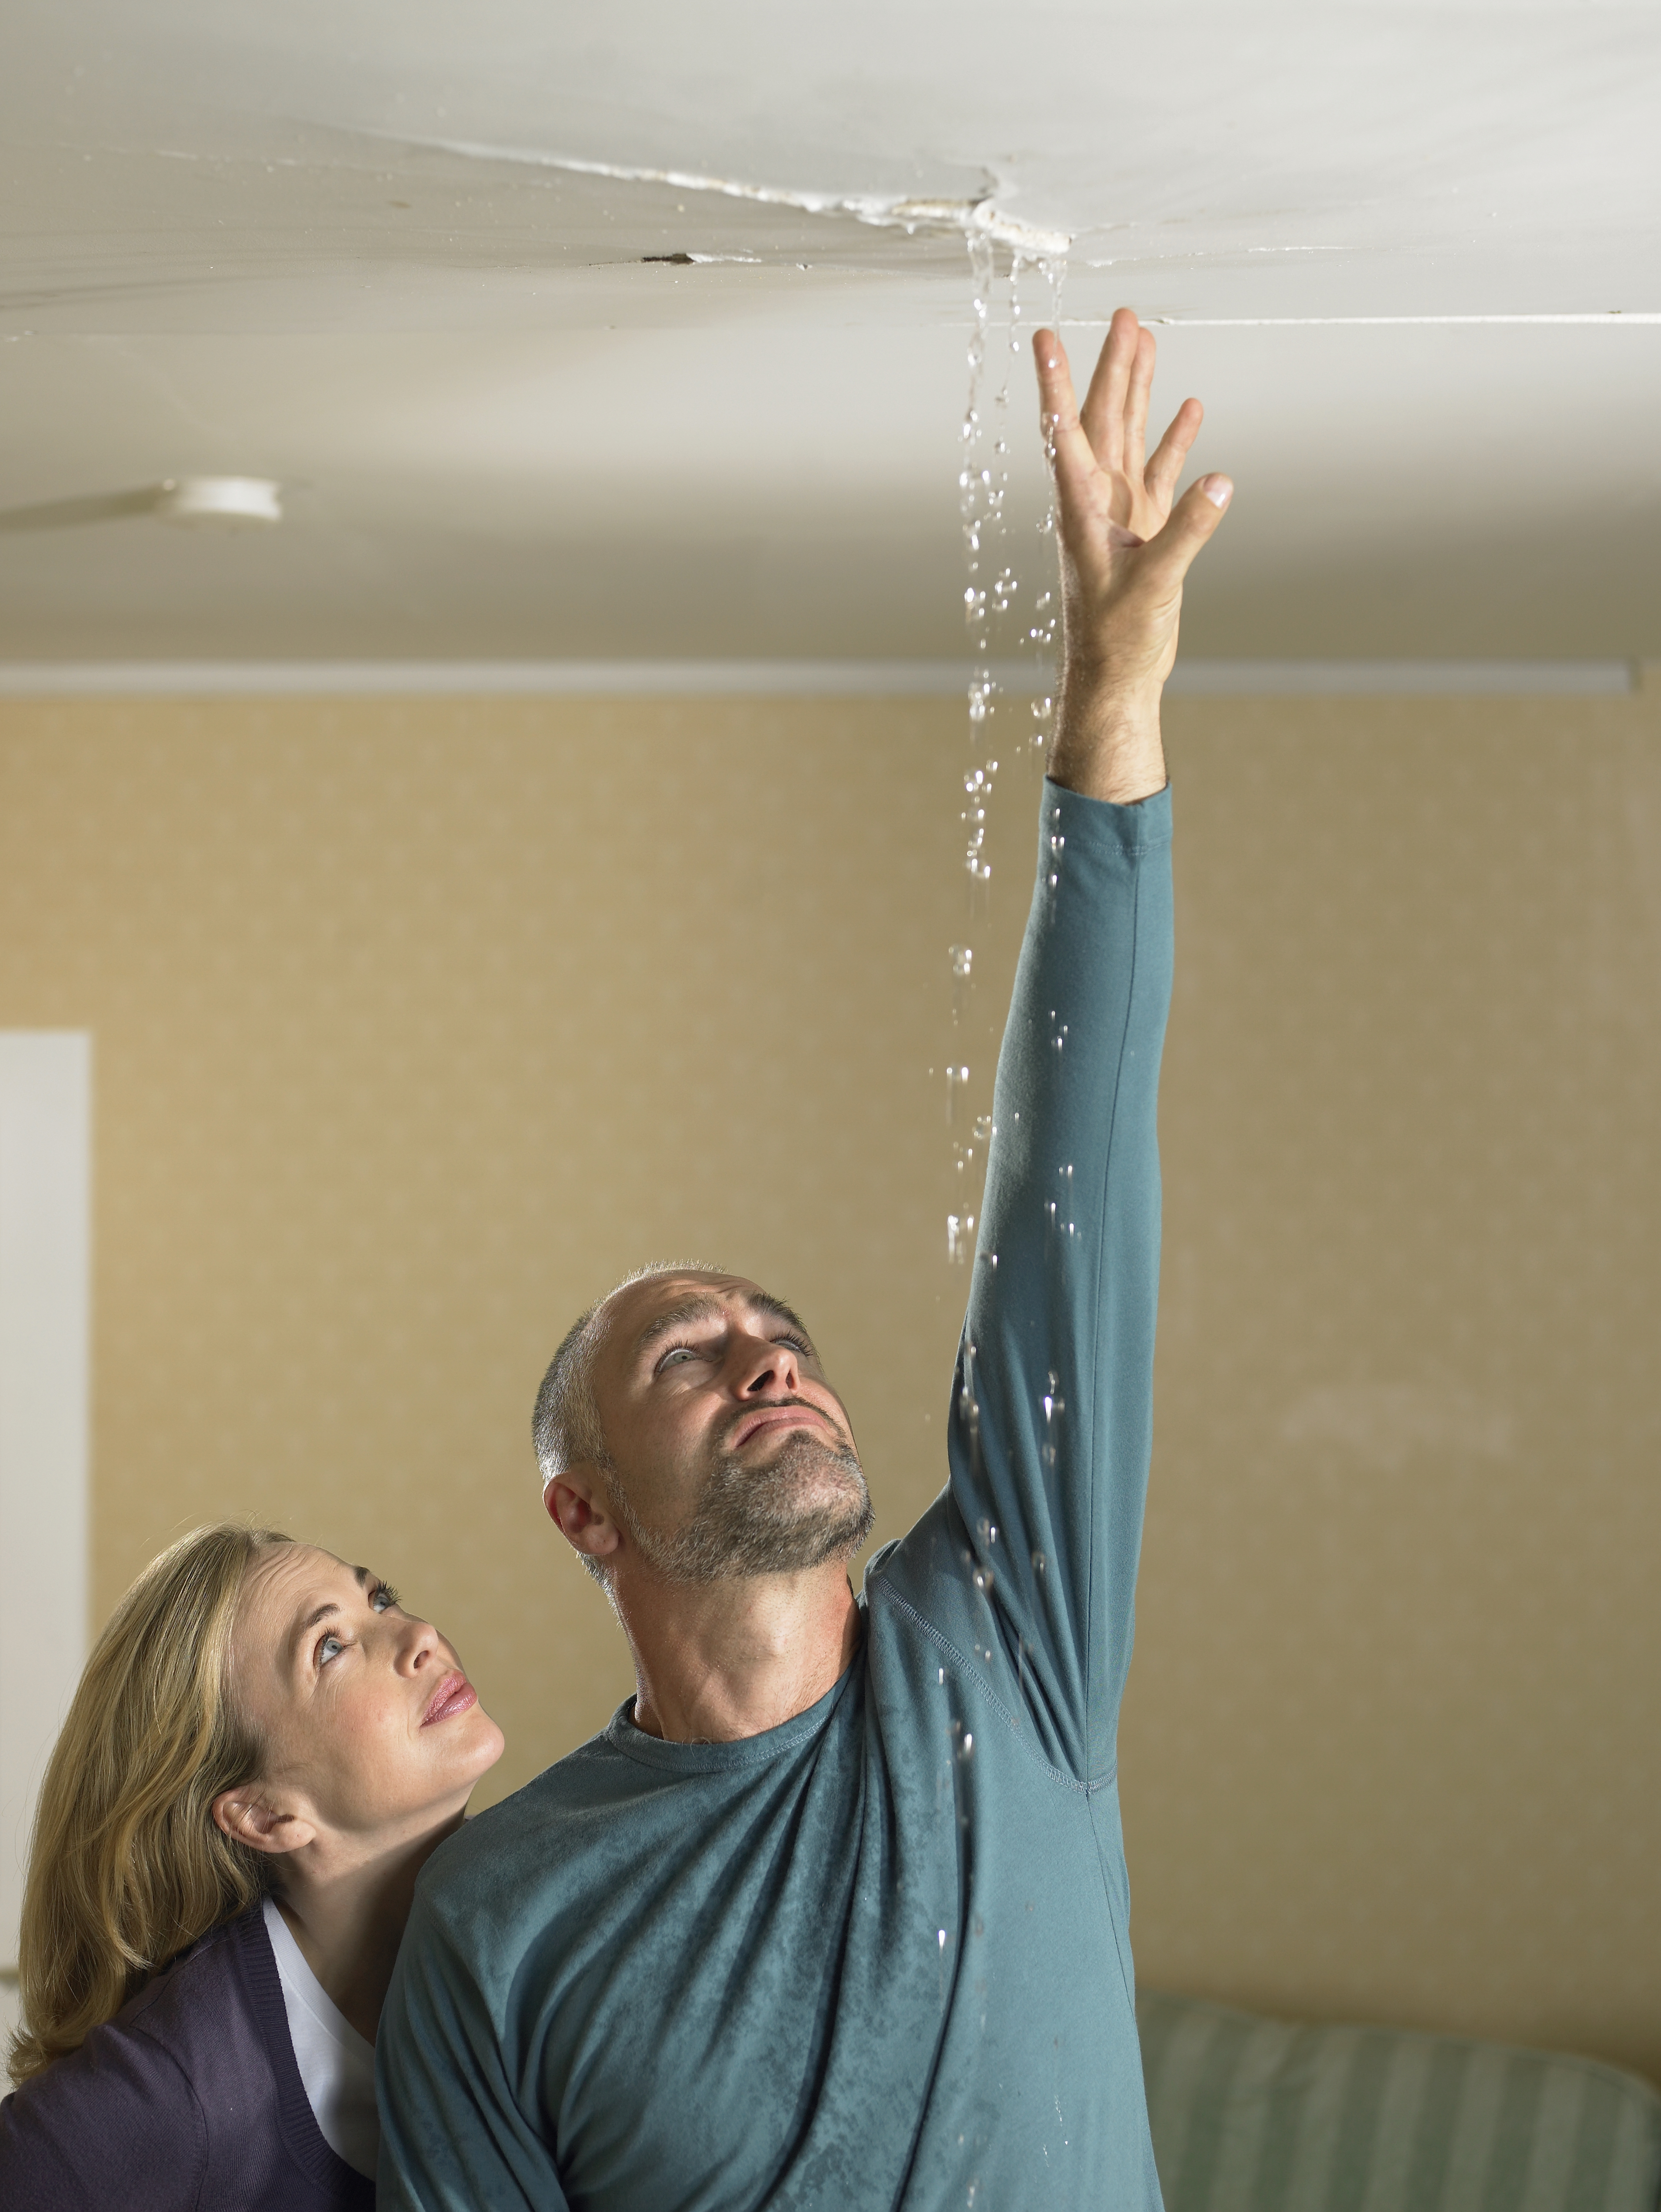 Making a ceiling repair claim? Need a professional quote for